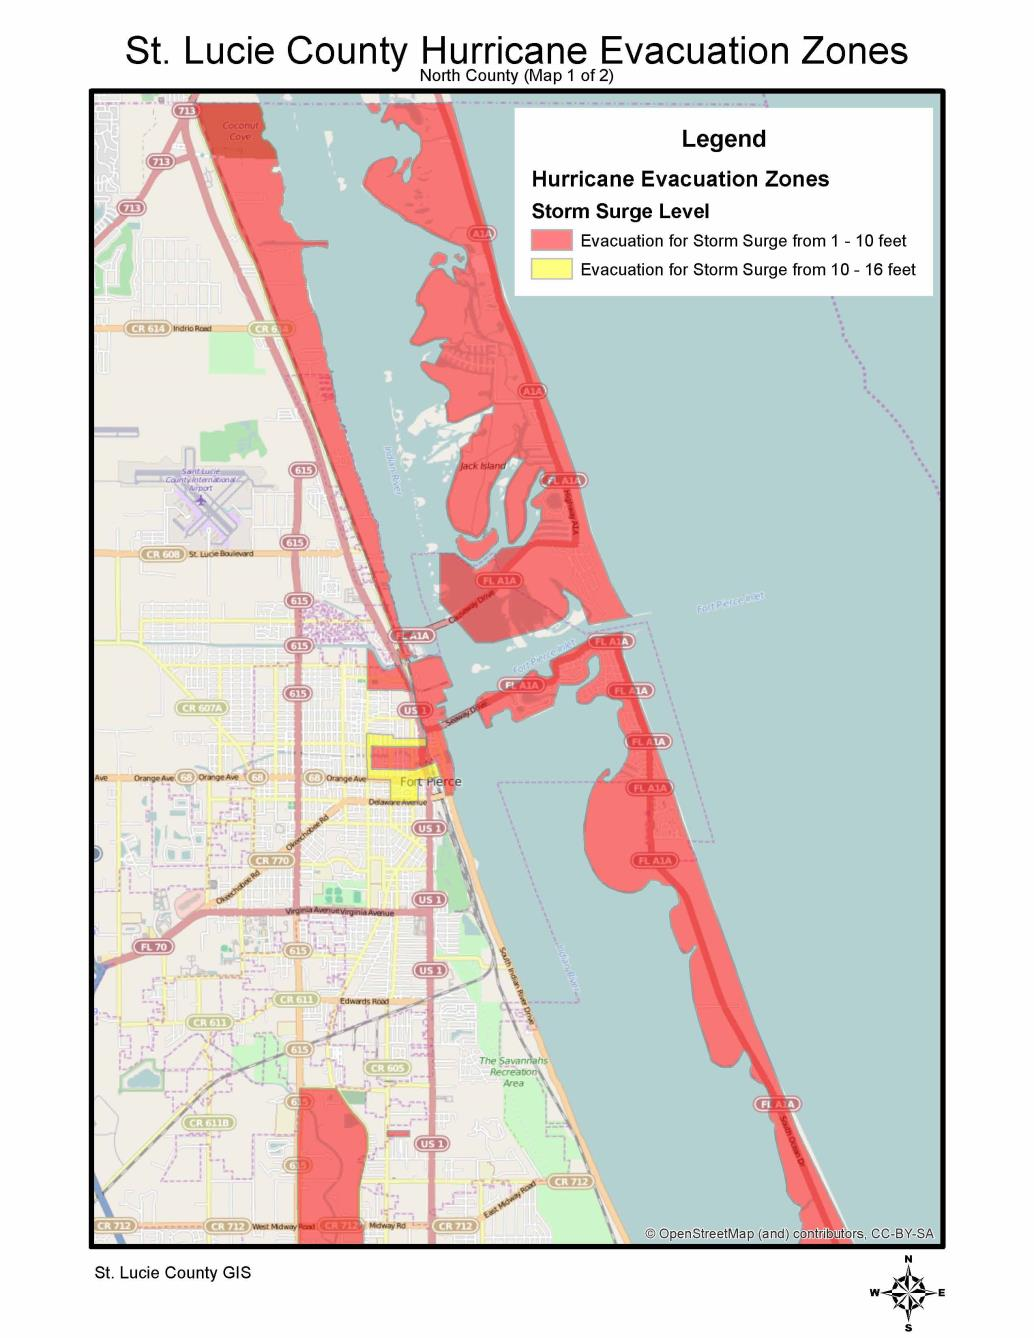 Hurricane Evacuation Zones for SLC North